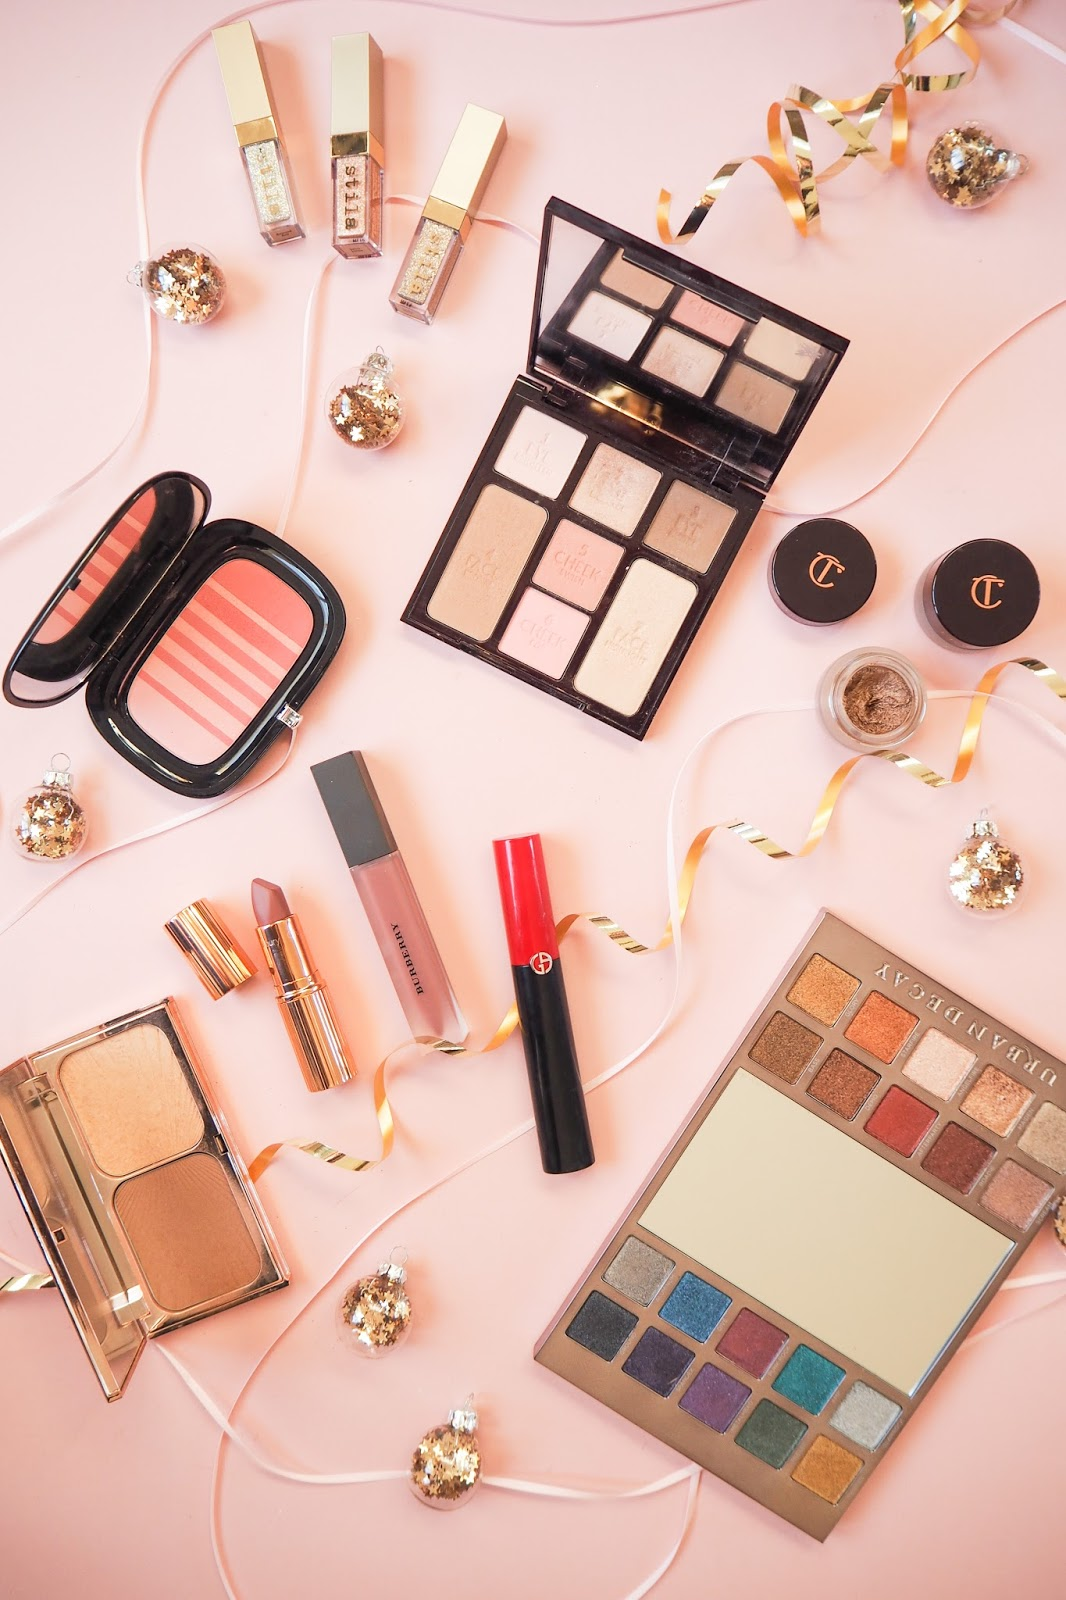 What to buy someone who loves makeup for Christmas